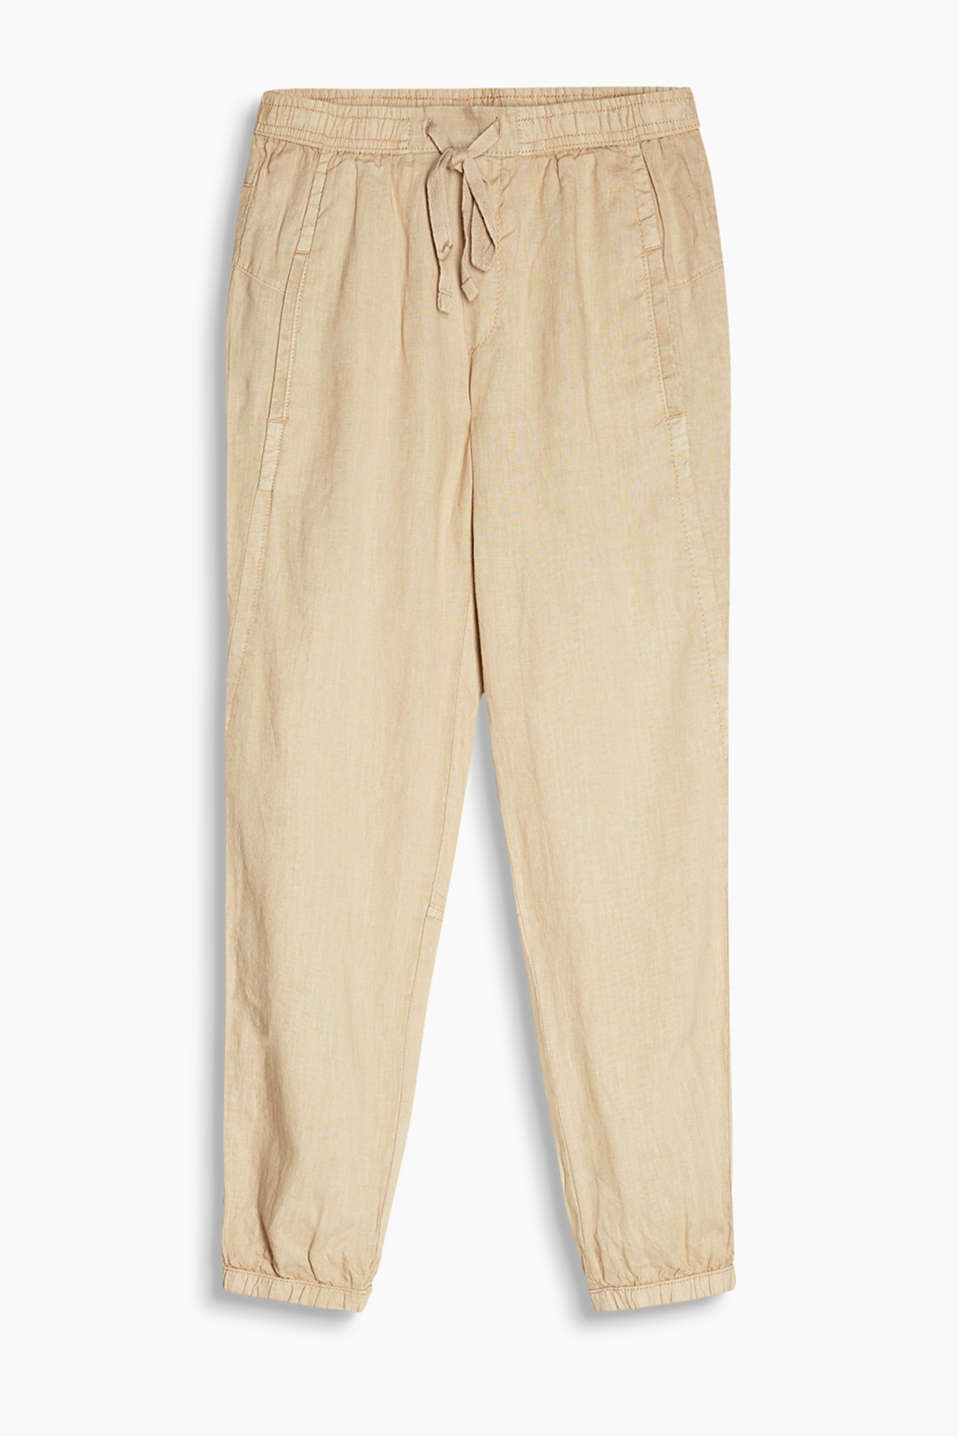 Casual cuffed trousers with elasticated cuffs in 100% linen